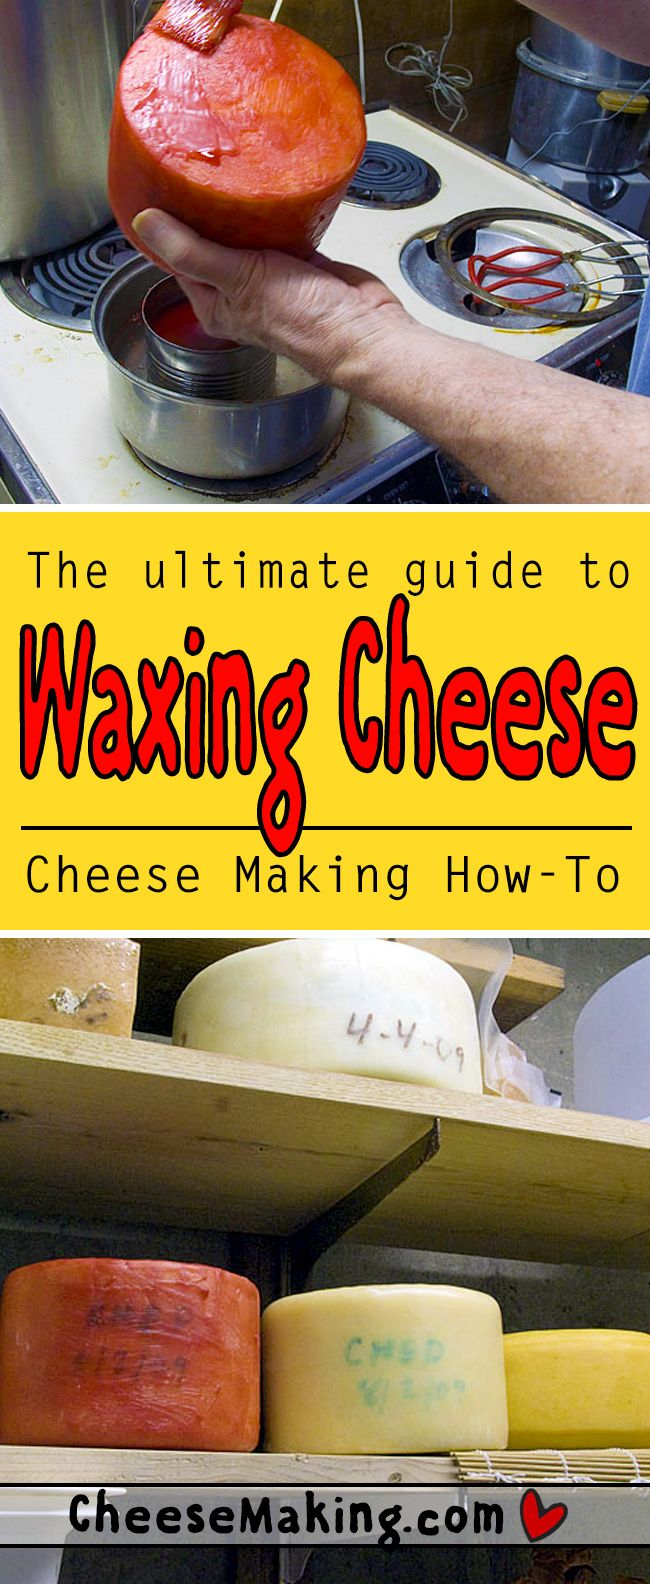 We get many questions on waxing cheese as well as requests for help when mold forms under the wax. This article will help answer your questions and guide you through the waxing process. You'll also find some helpful tips for when things do not go as planned when aging cheese.